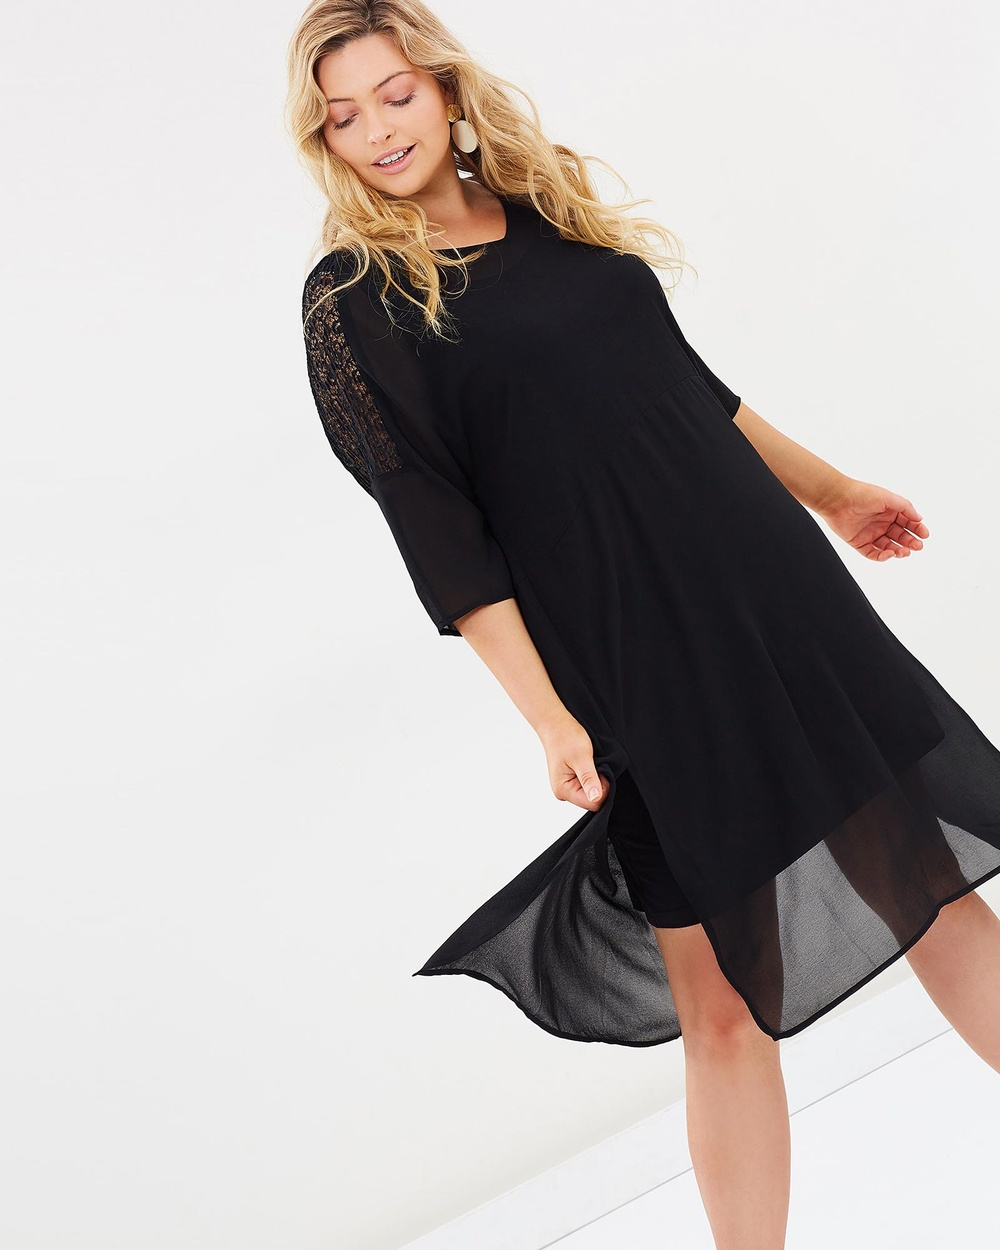 Advocado Plus Panelled Layering Dress Dresses Black Panelled Layering Dress